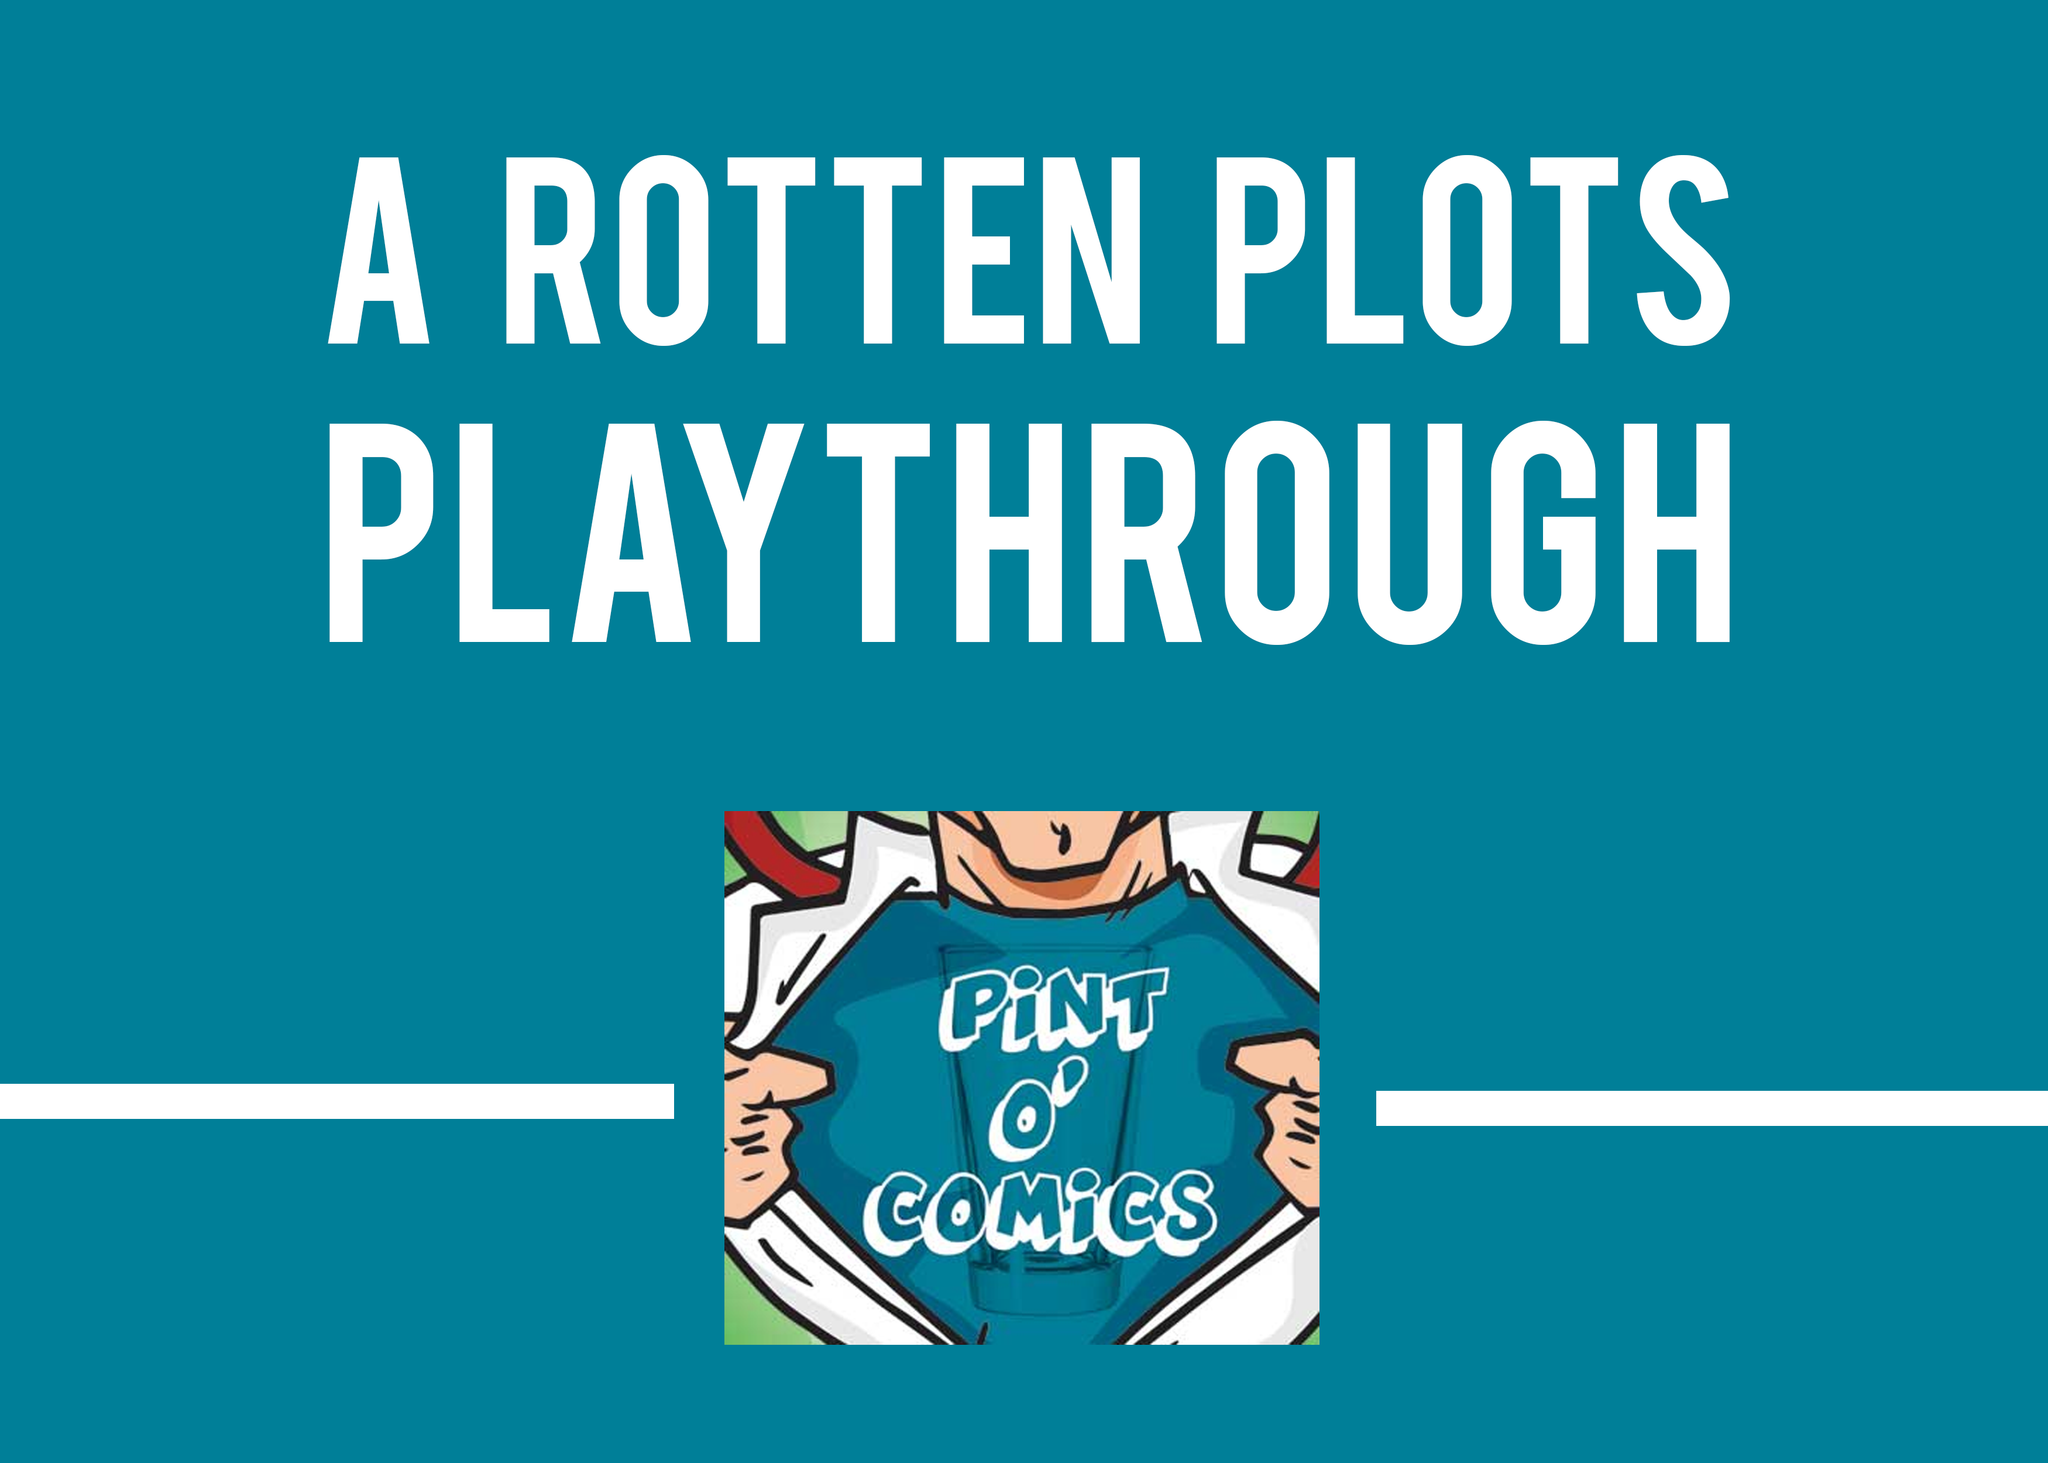 Rotten Plots Playthrough Pint O' Comics